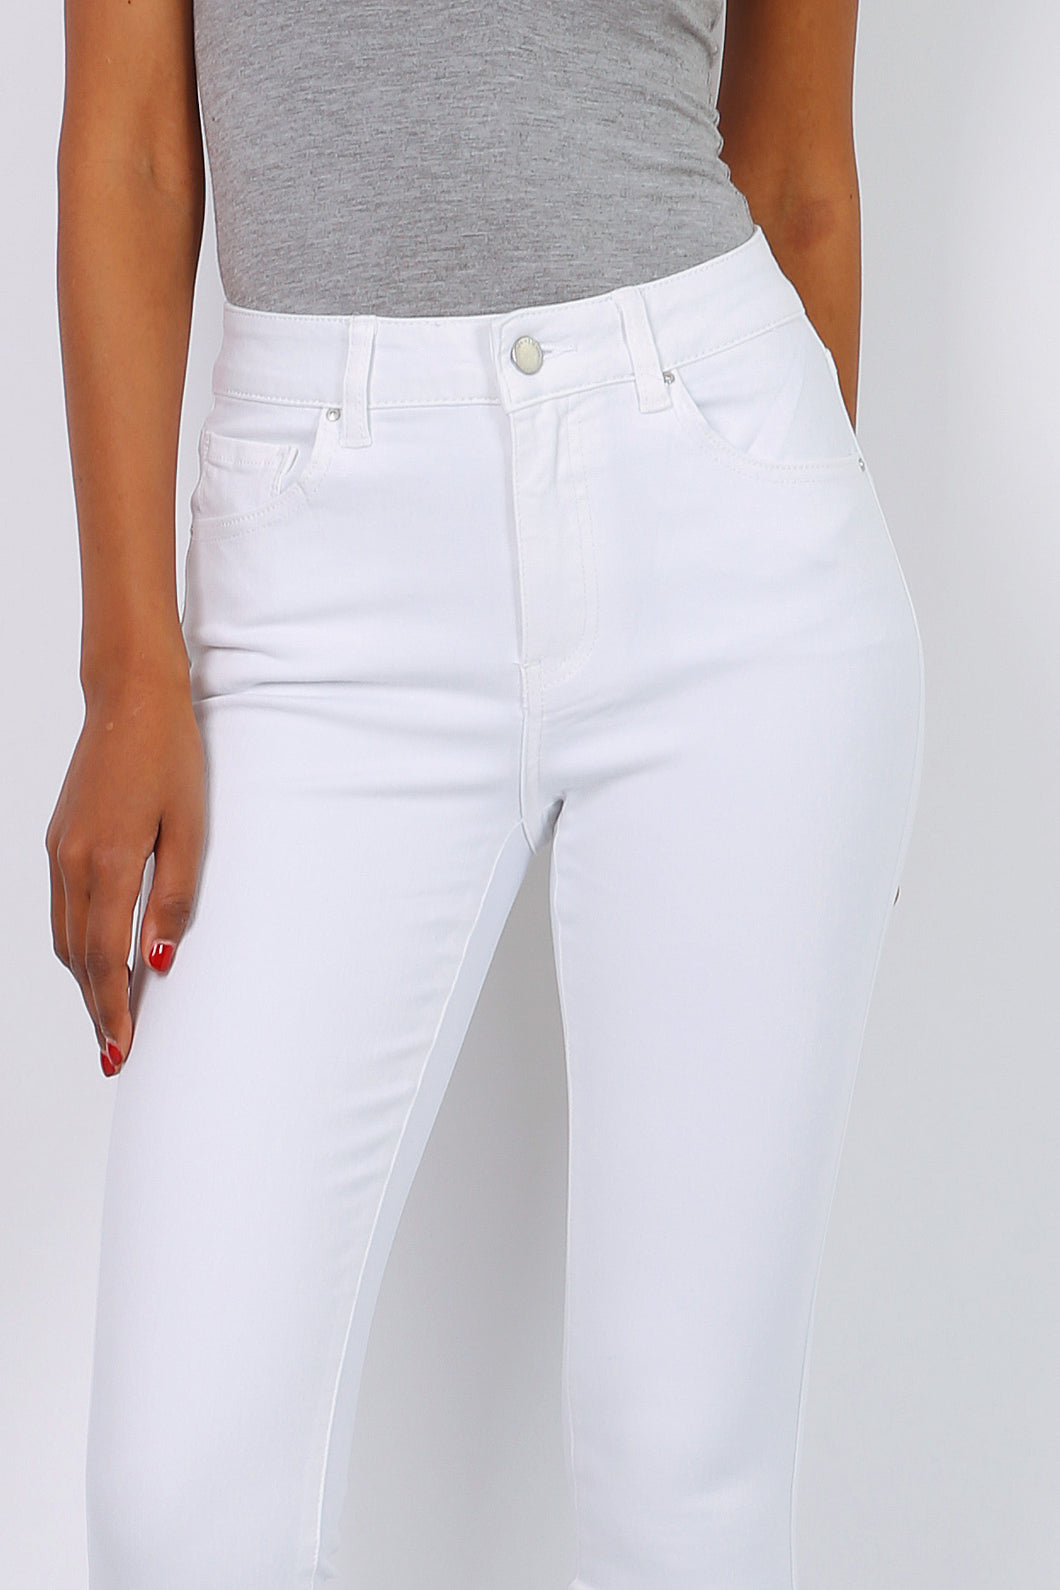 Toxik3 – High Waist Coloured Jeans - White - L1700